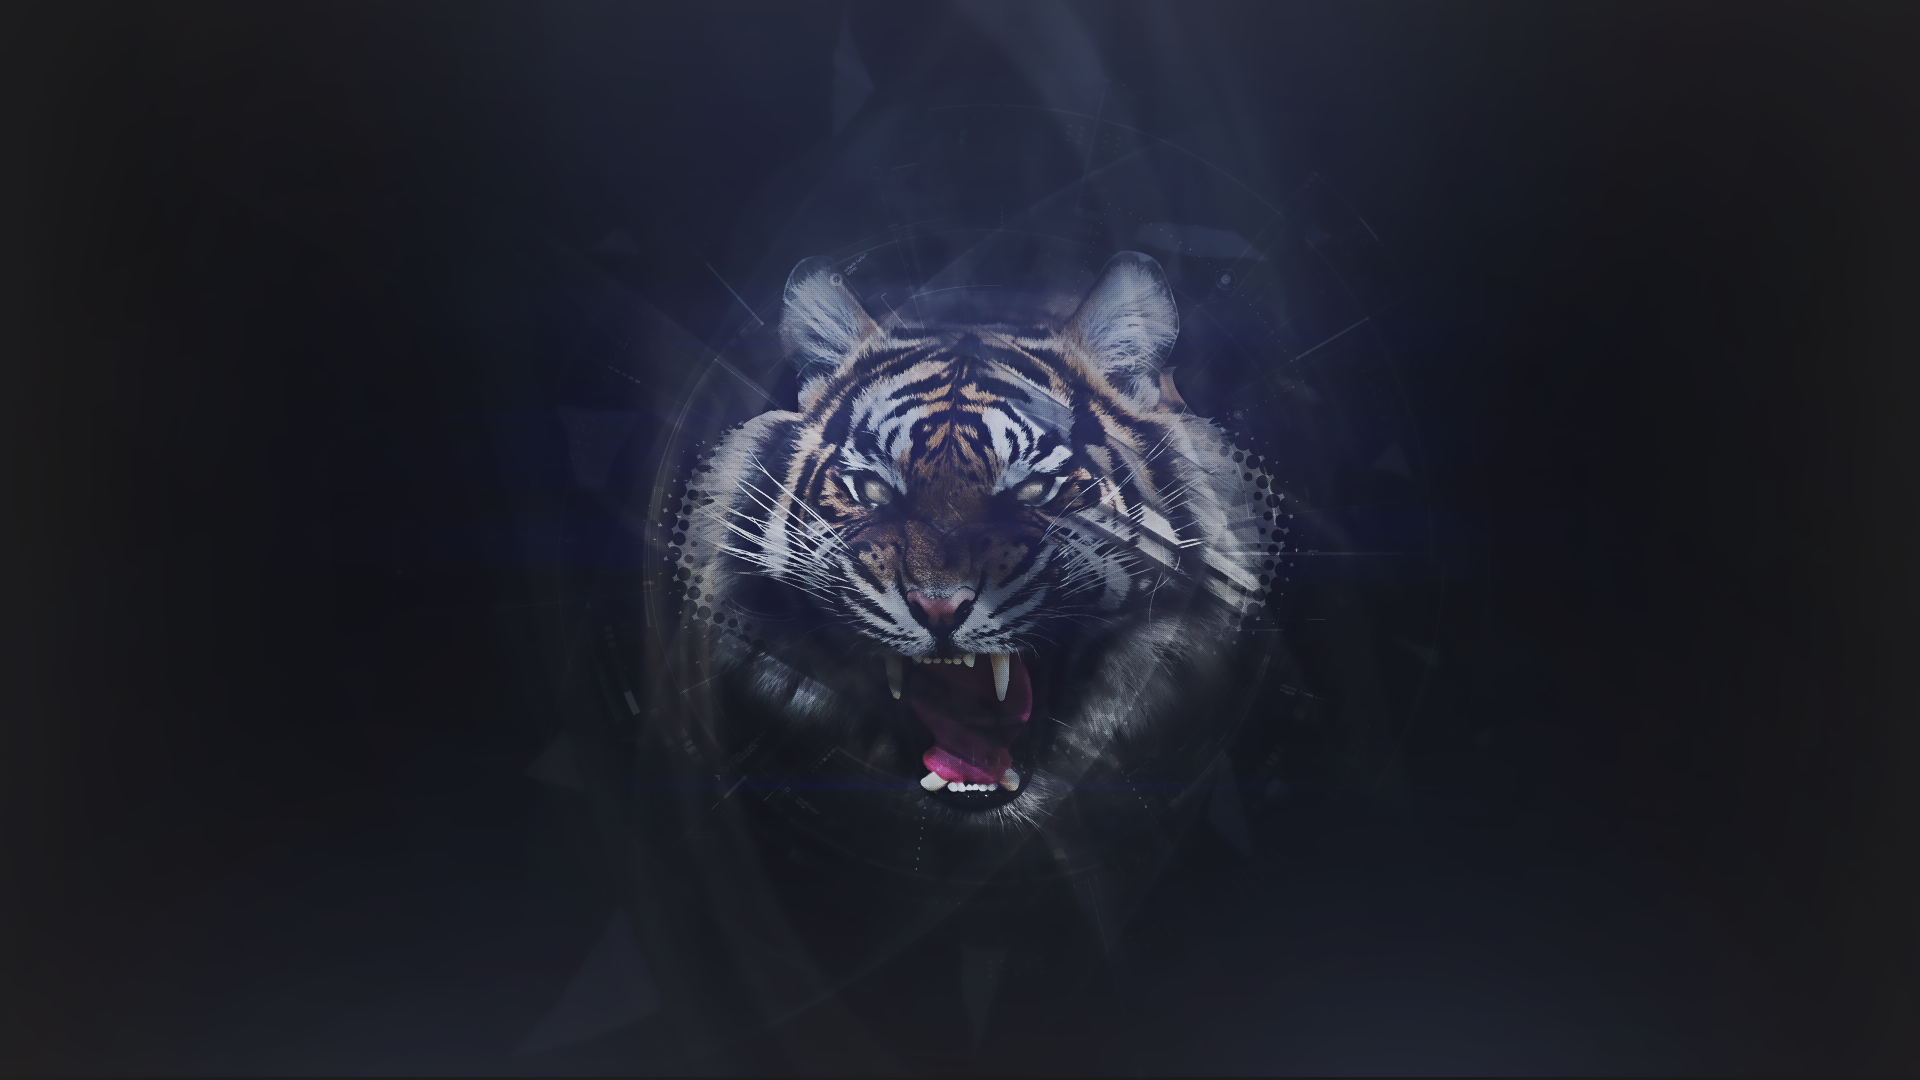 Abstract tiger wallpaper by zeracreations on deviantart abstract tiger wallpaper by zeracreations abstract tiger wallpaper by zeracreations altavistaventures